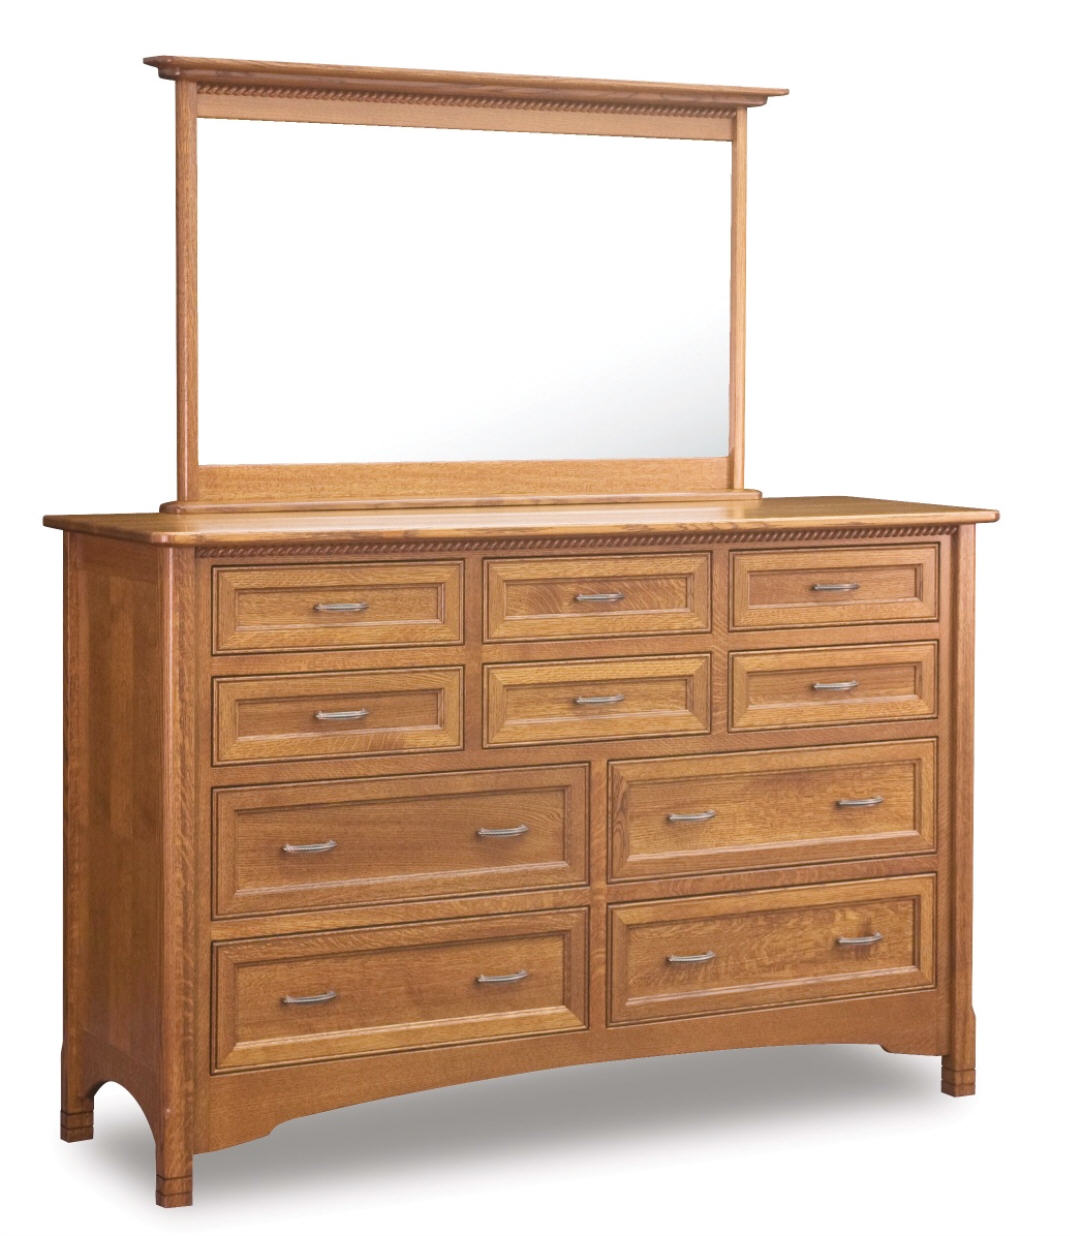 Westlake tall dresser 586 wl6410d 129 bedroom for Stone barn furnishings